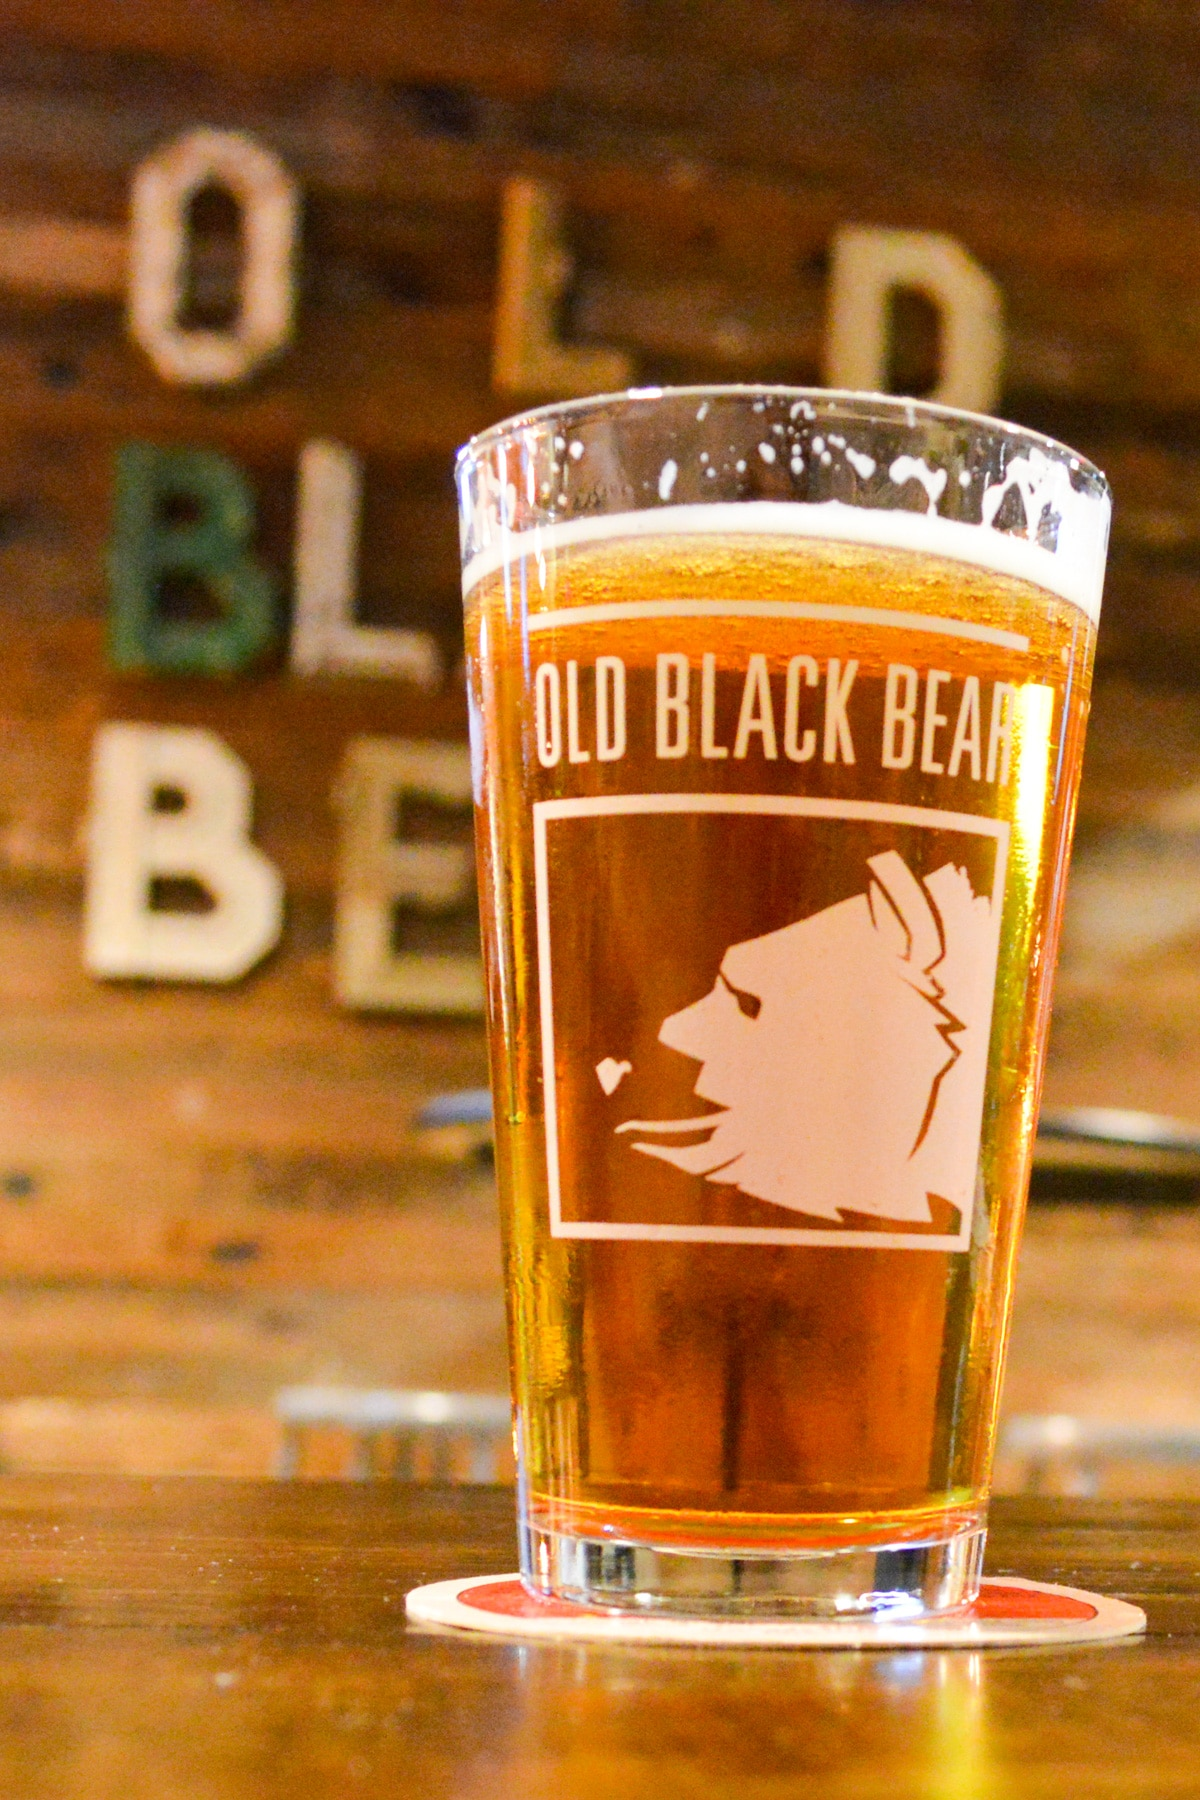 Brewery Snapshot: Old Black Bear Brewing in Madison, AL. Old Black Bear Brewing is a must visit brewpub in Huntsville. Great farm-to-table food with brewery fresh craft beer!